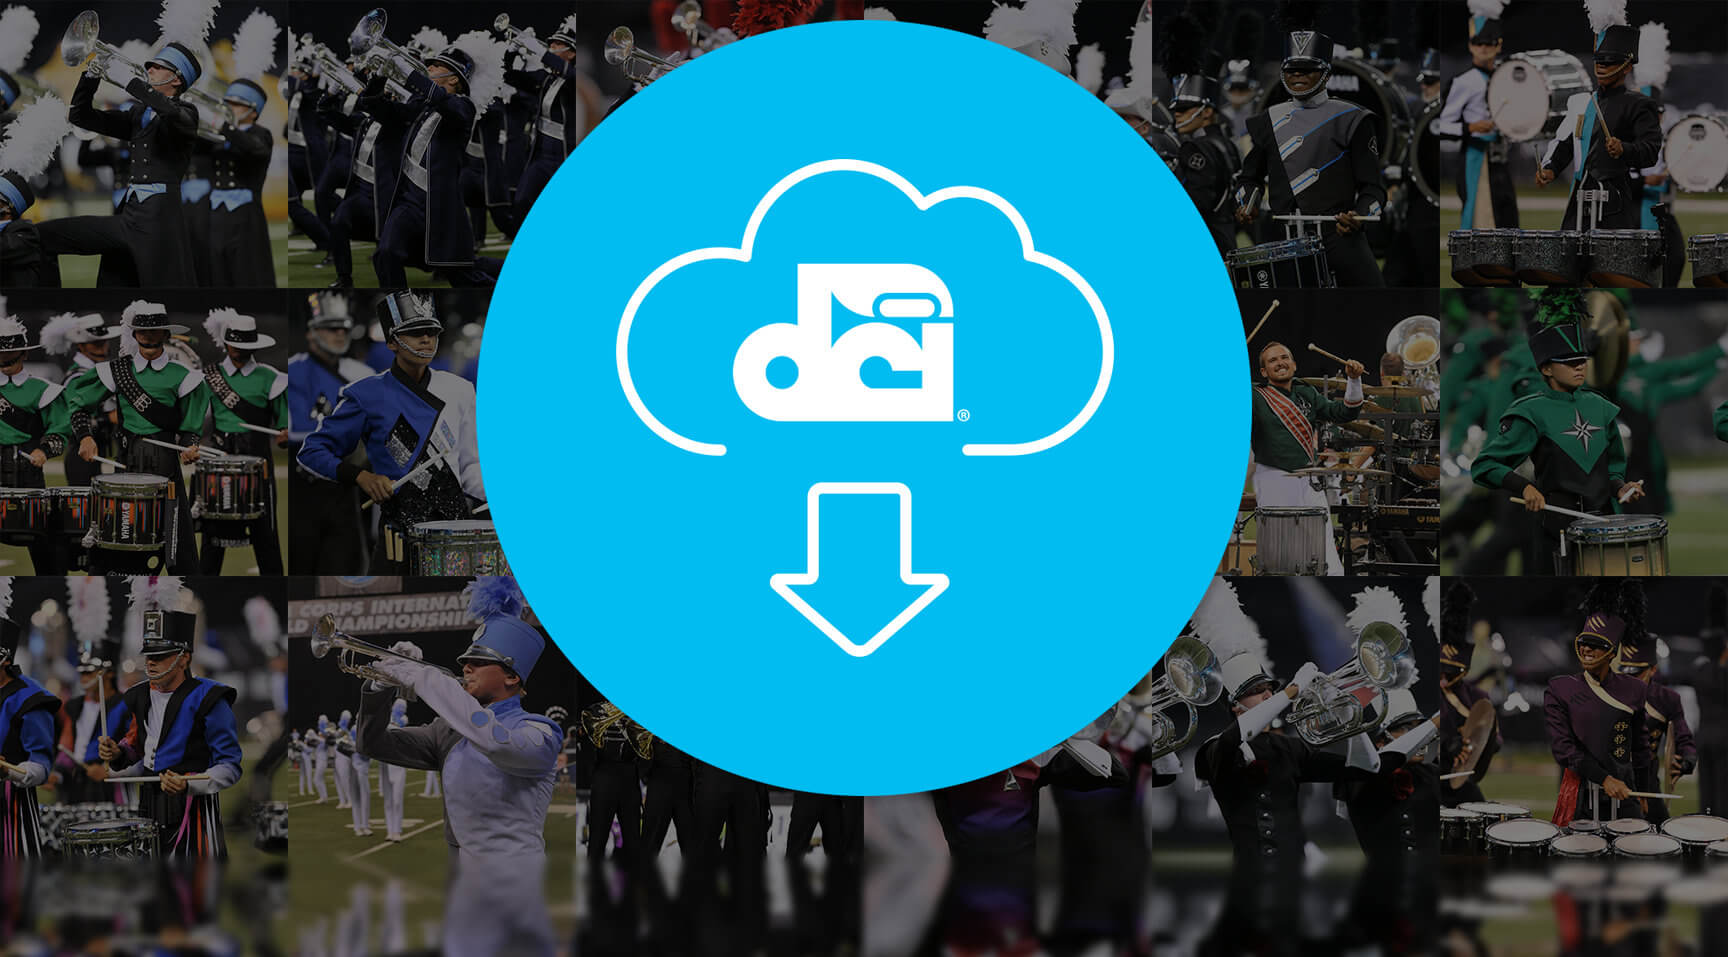 The all-new Marching Music Downloads Store from DCI